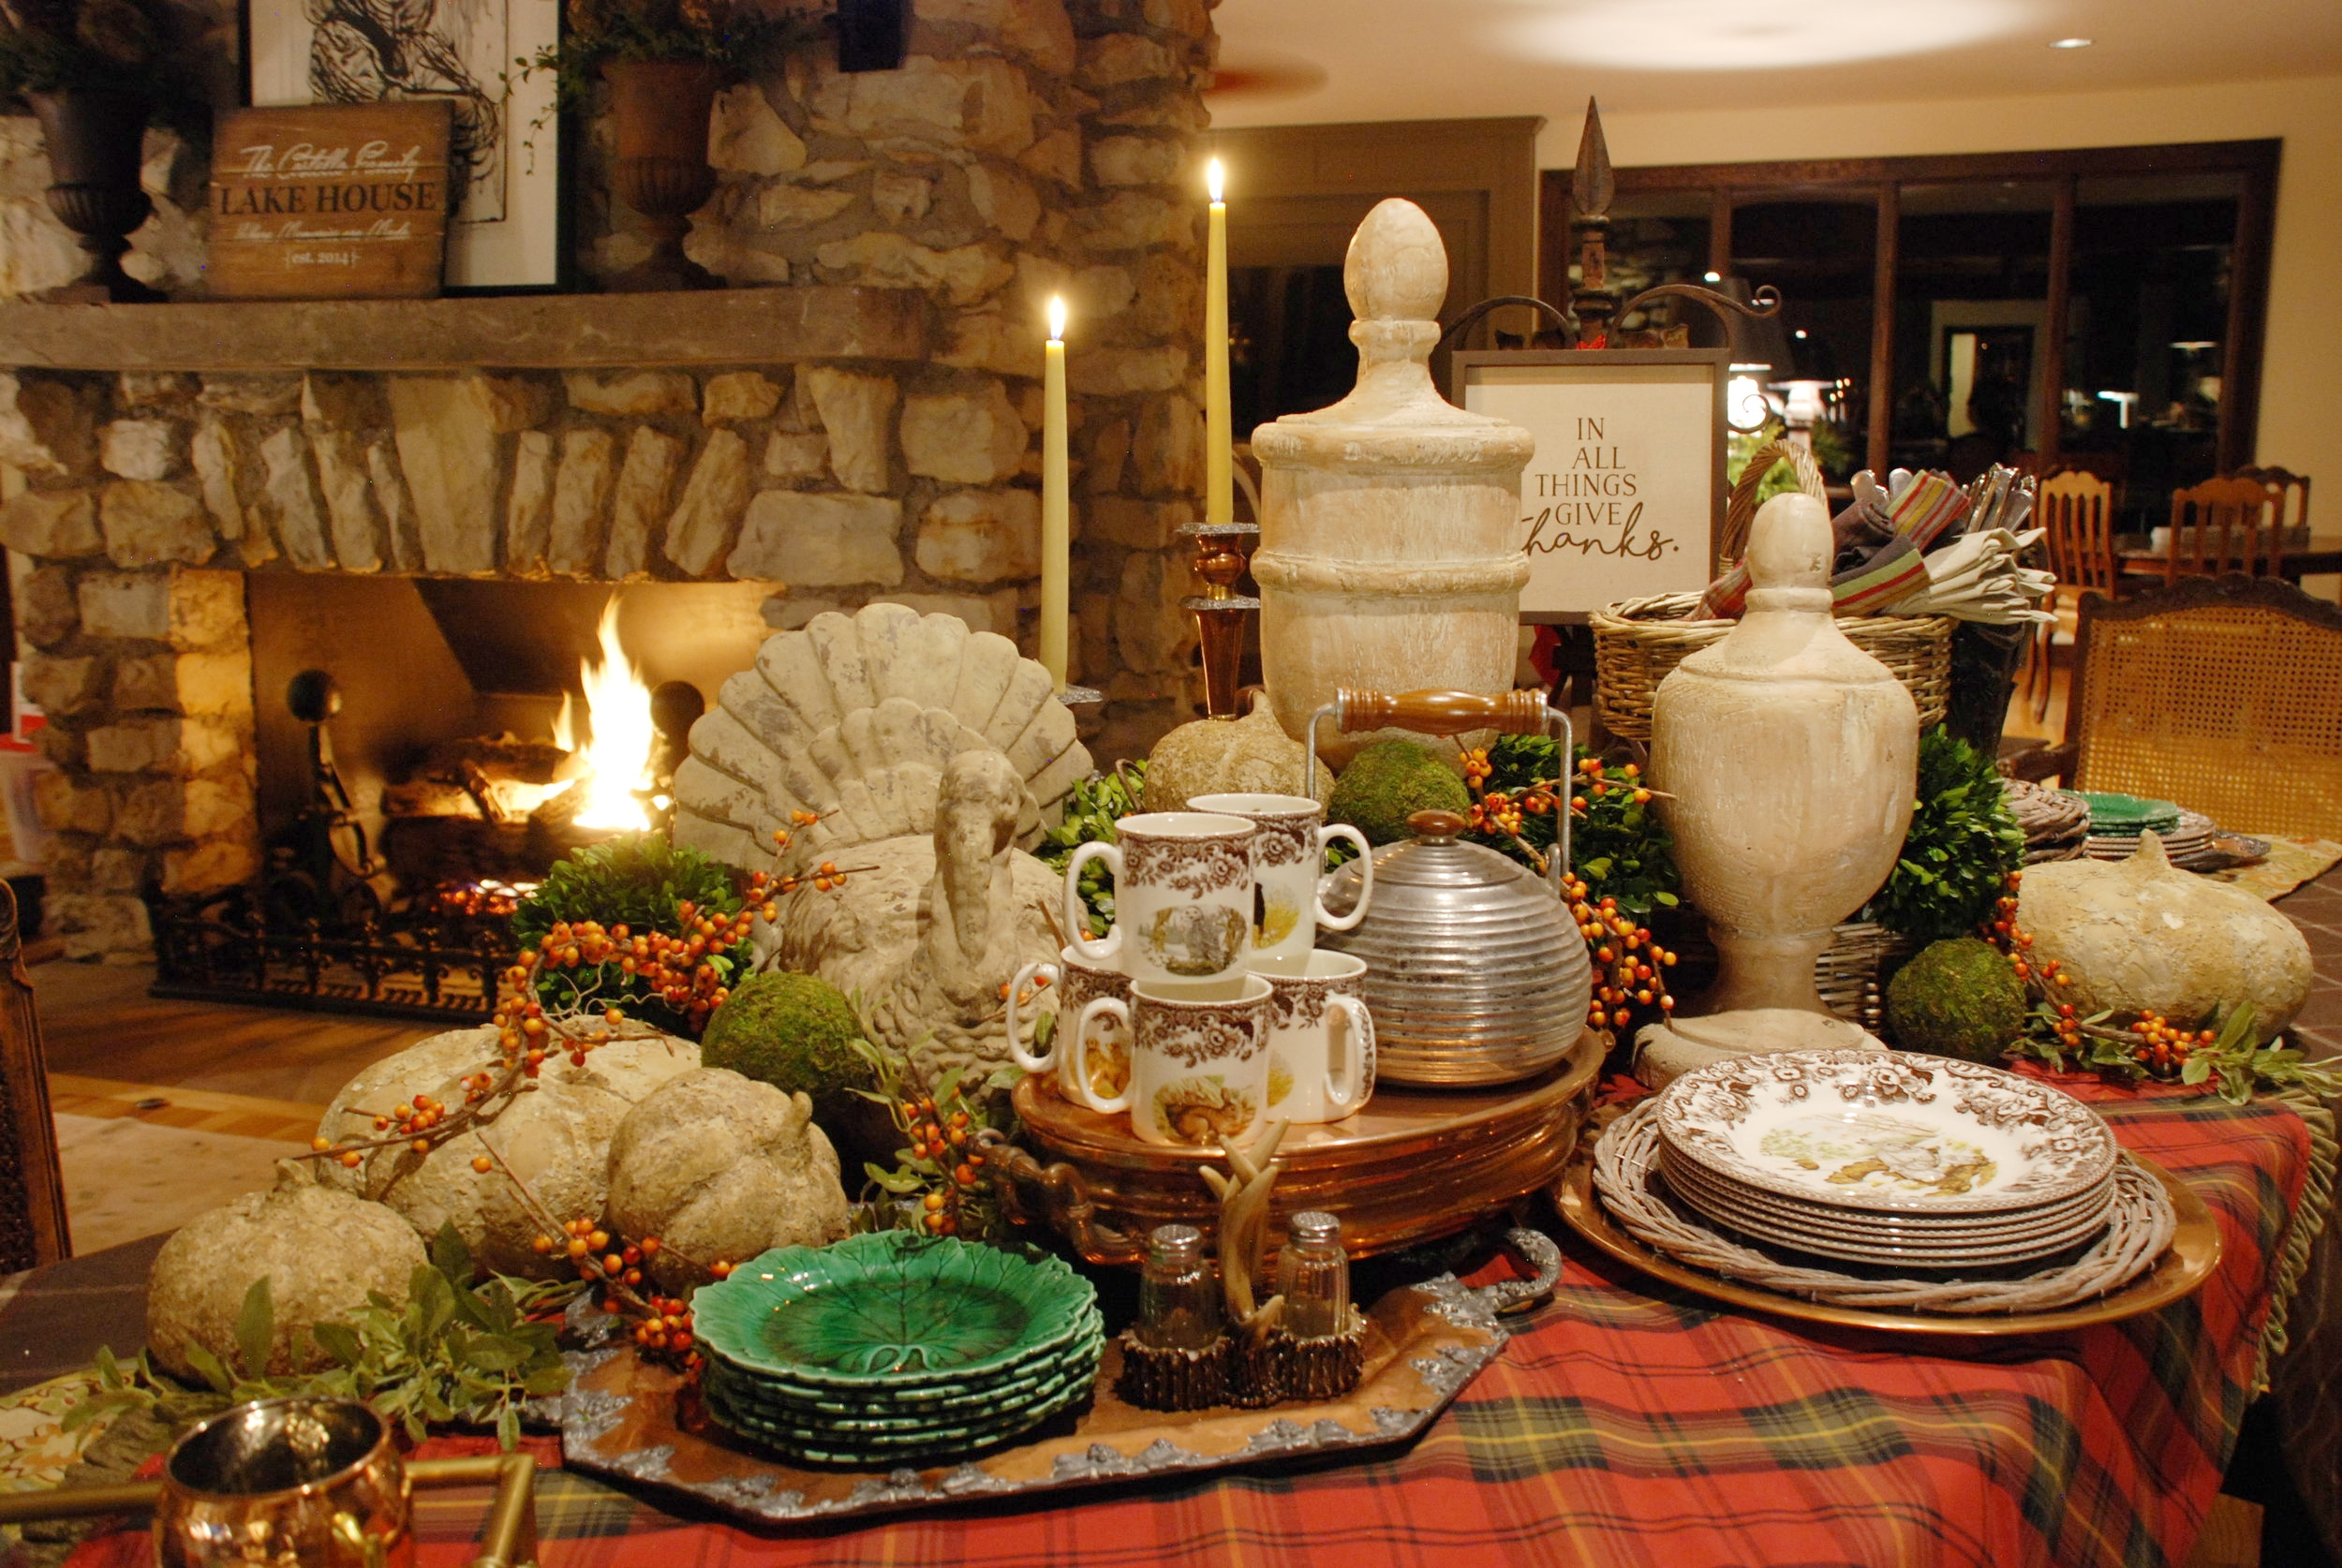 """It's Thanksgiving at Spruce Home and it can be in your home, too with these lovely stone and wood pieces. As the sign says, """"In all things give thanks.""""  Design by Zakk Hoyt"""